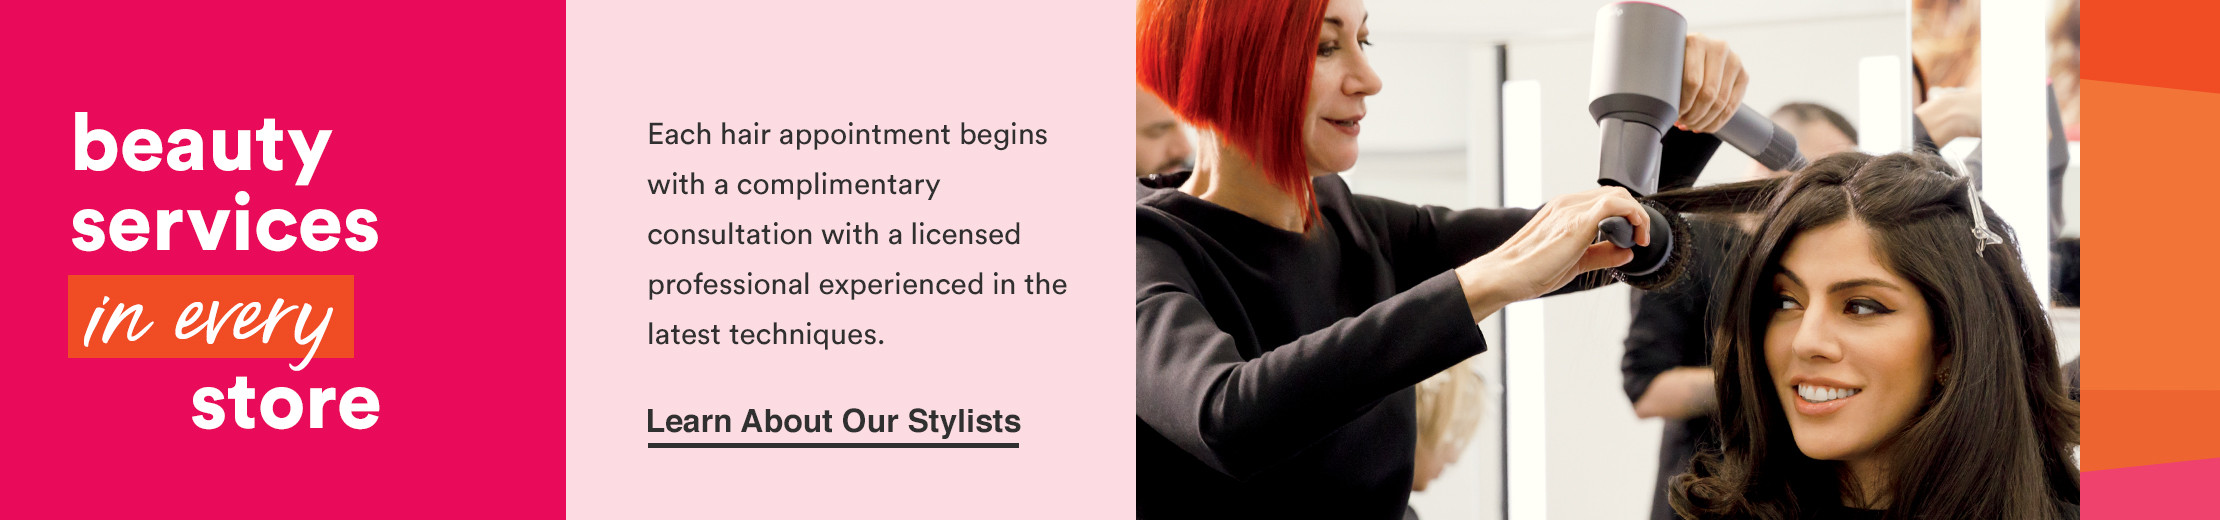 Ulta Salon Hair & Beauty Services Menu | The Salon At Ulta